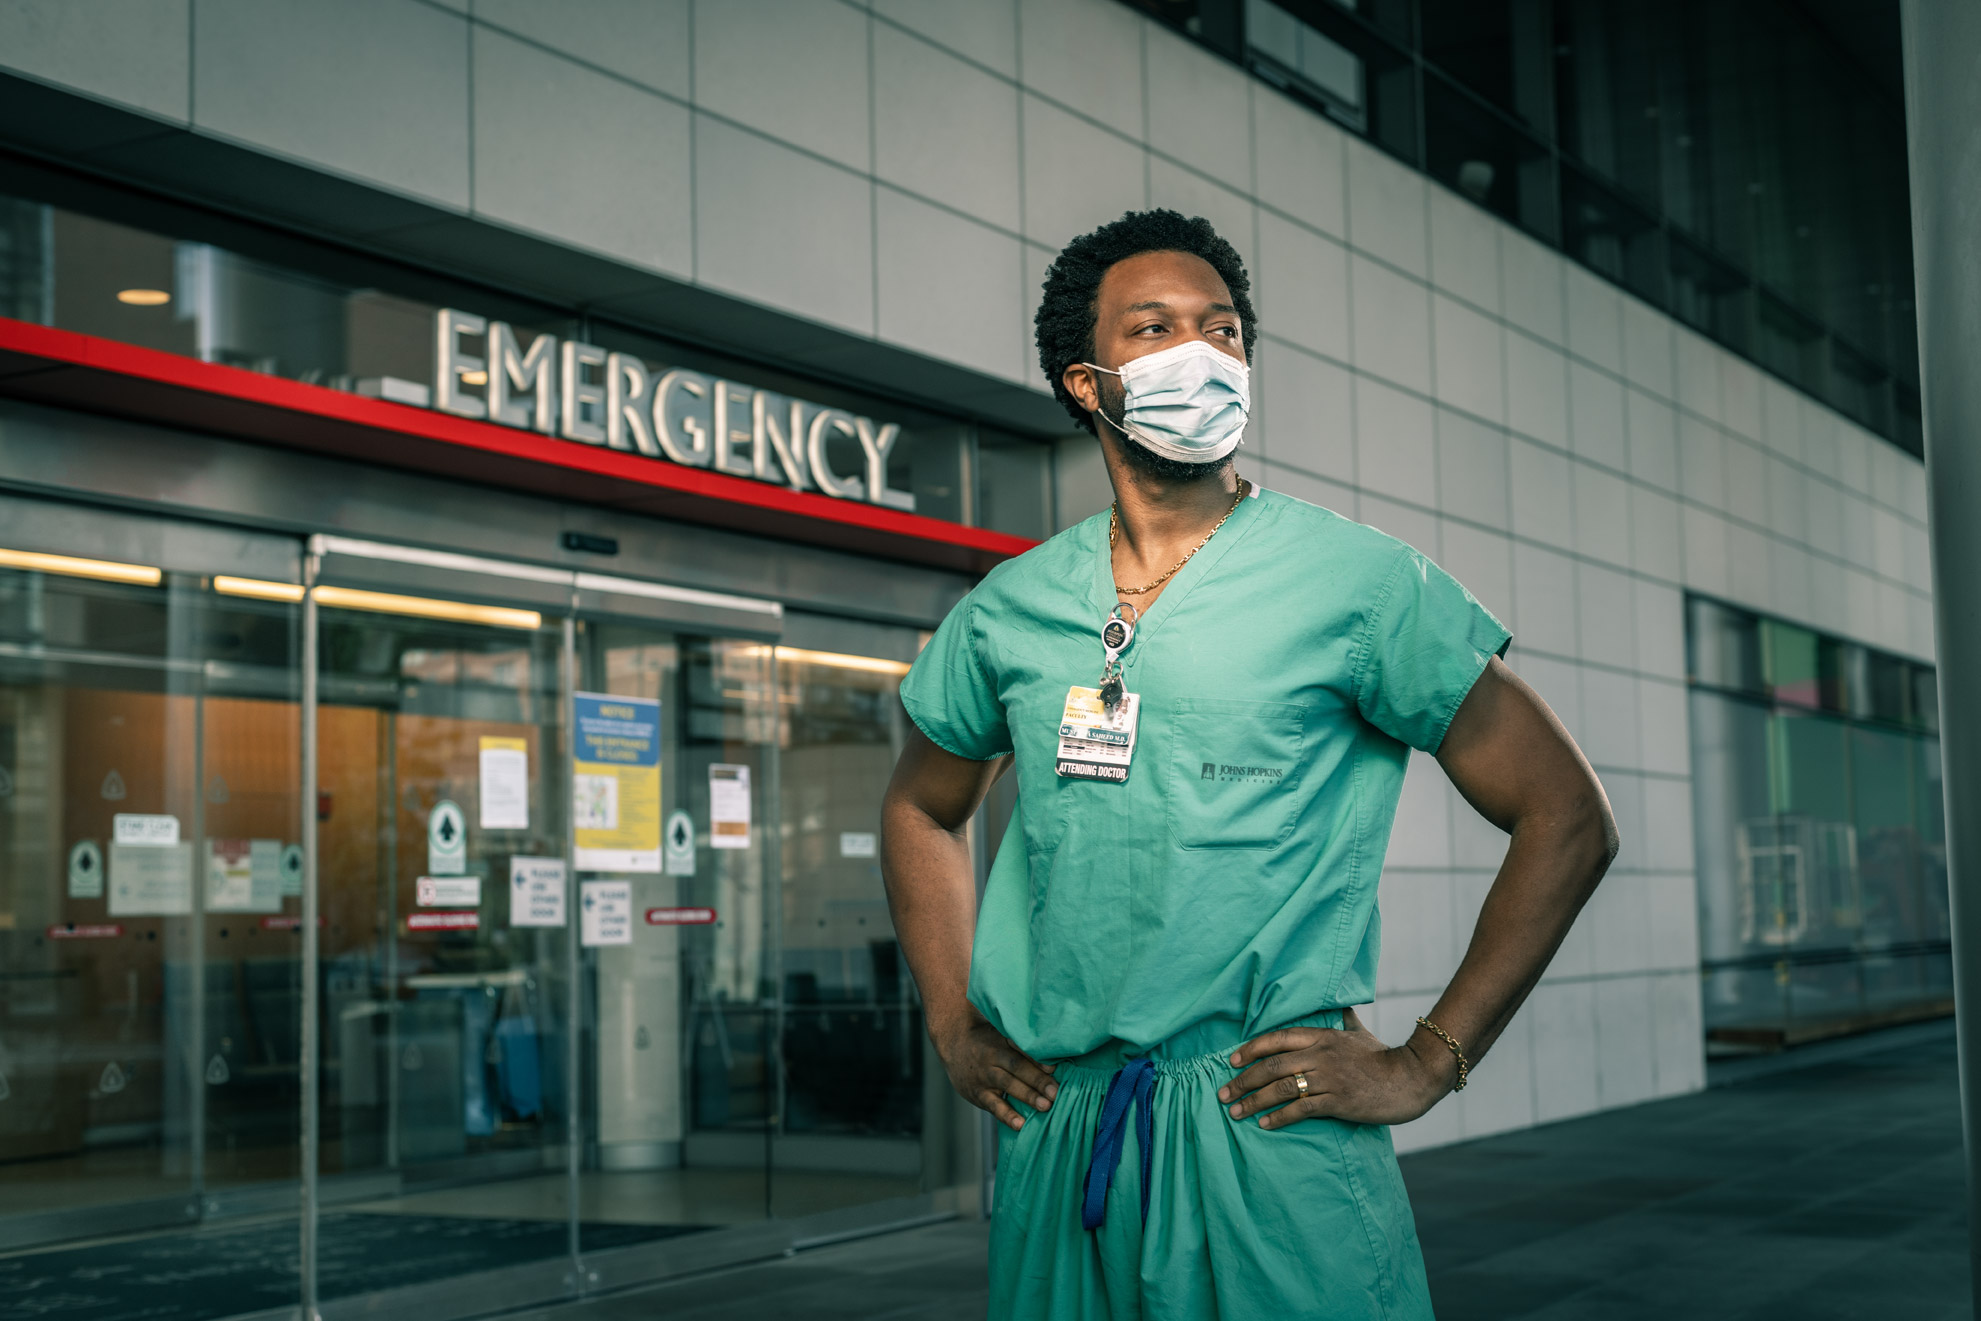 Dr. Mustapha Oladapo Saheed wearing scrubs and his COVID mask in front of the emergency entrance